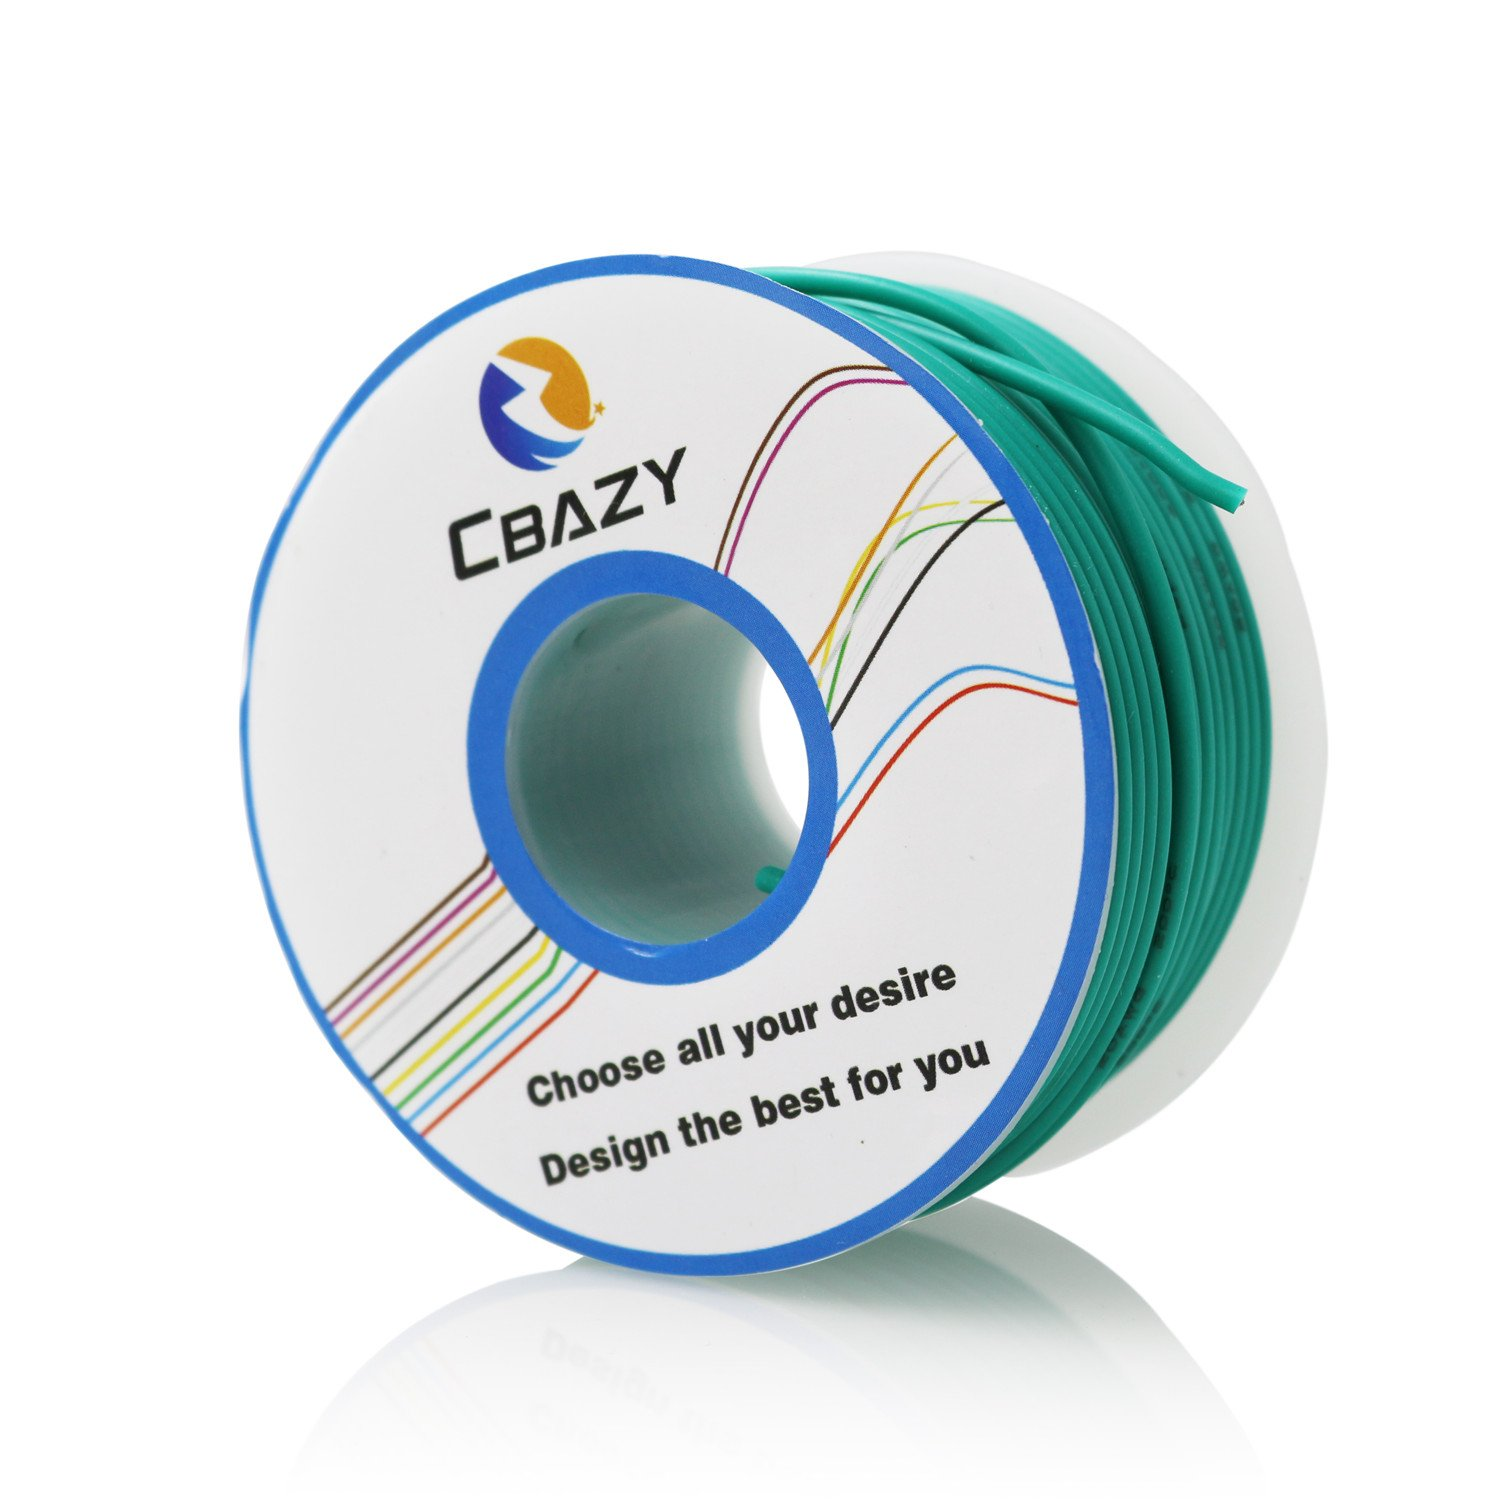 CBAZY™ Hook up Wire (Stranded Wire) 22 Gauge Flexible Silicone Wire 22AWG 25M (82 Feet) Electrical Wire Green by CBAZY (Image #1)